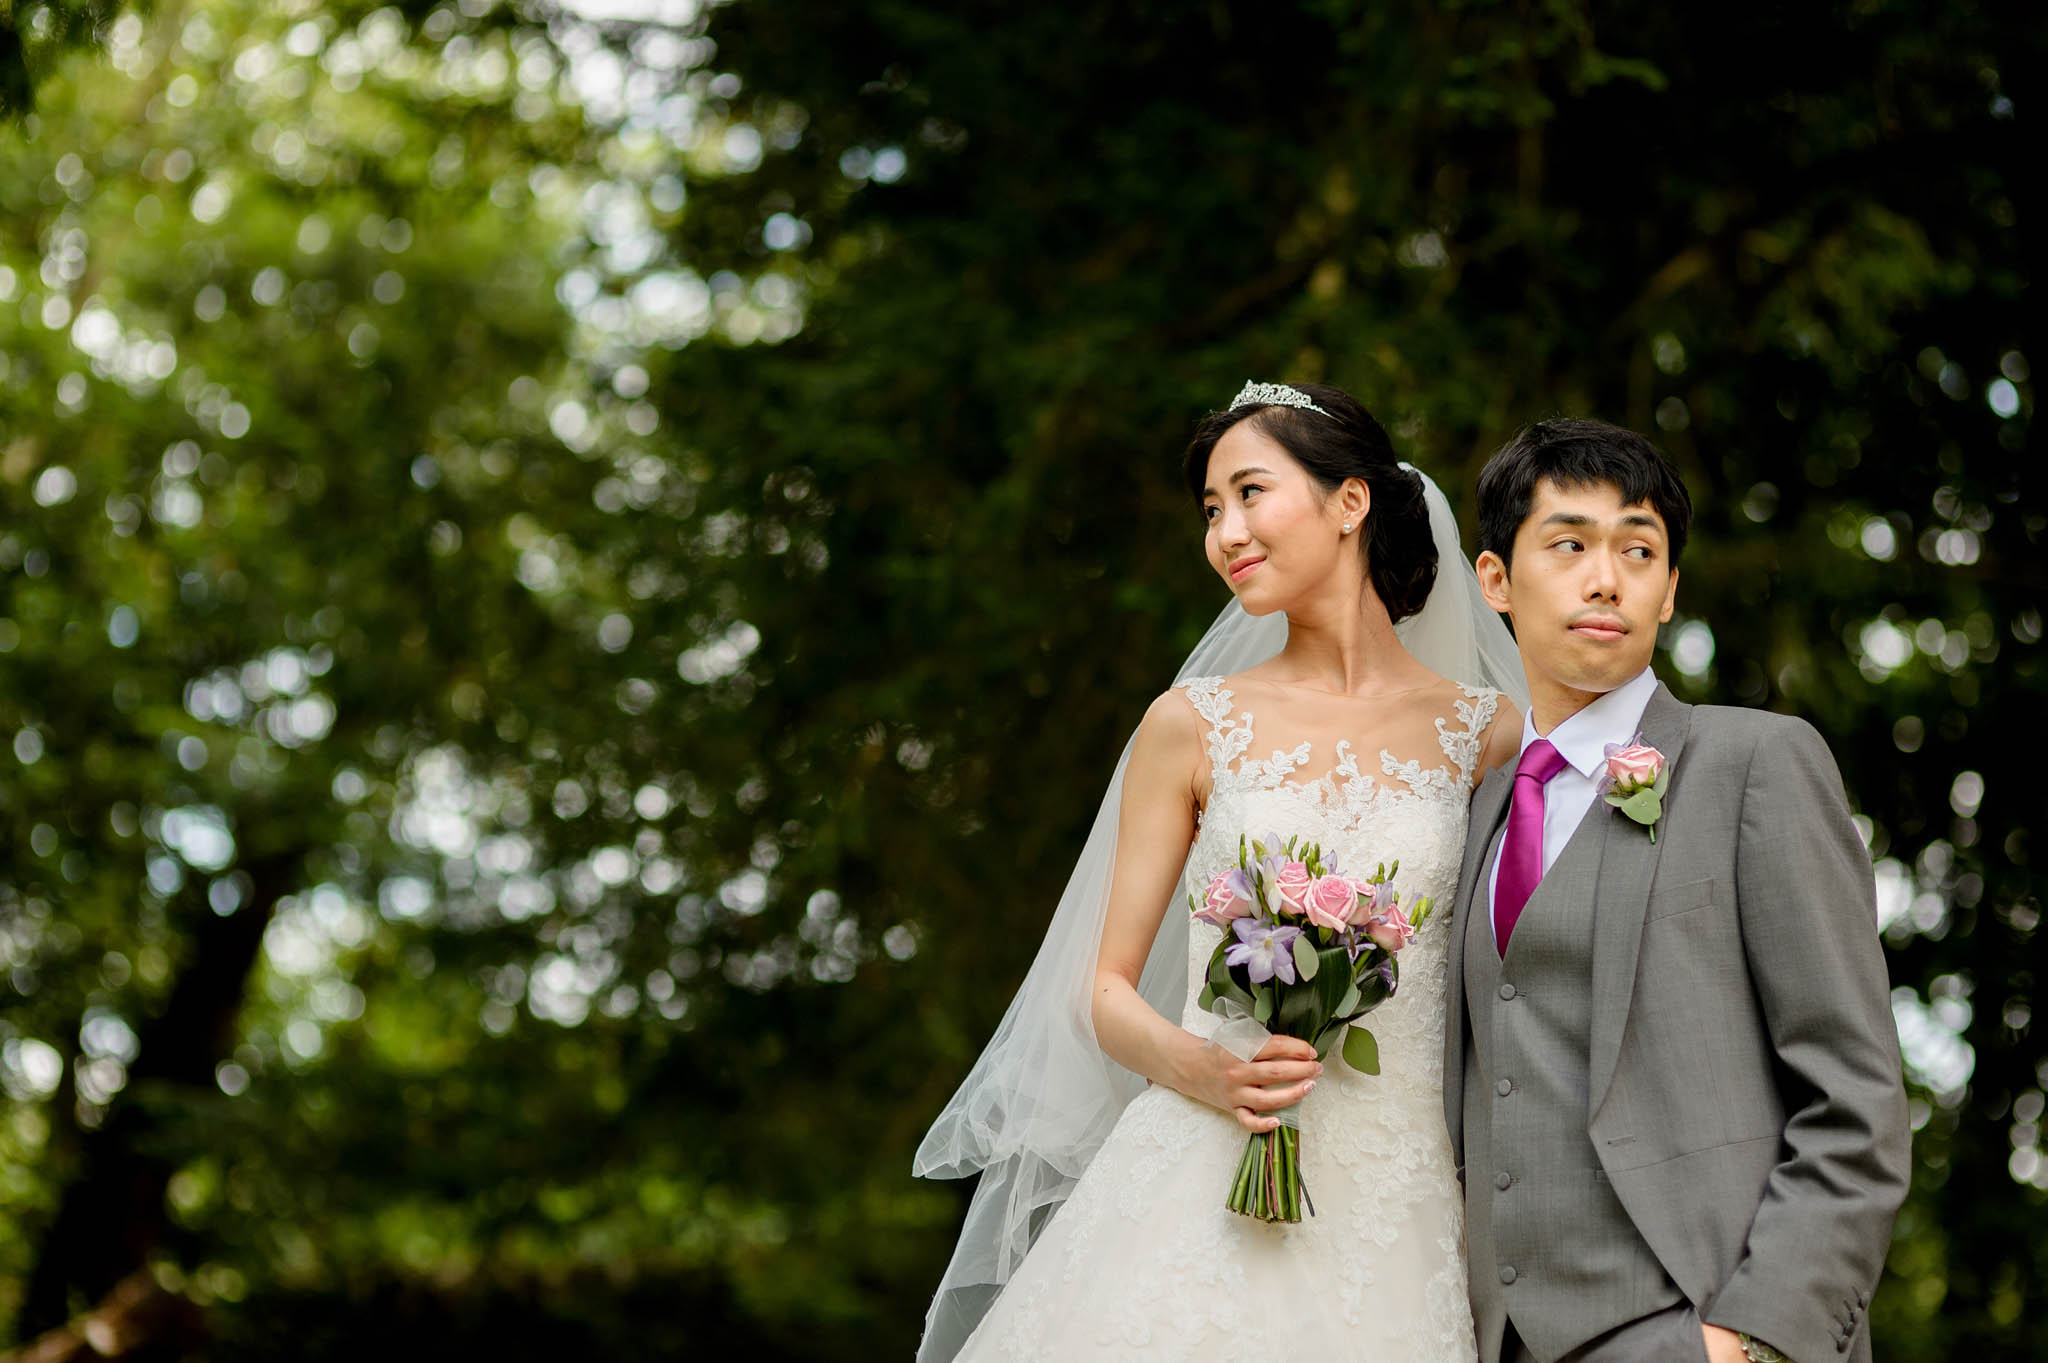 Chinese wedding at Eastnor Castle in Herefordshire, West Midlands - Yilin & Tongbiao 3